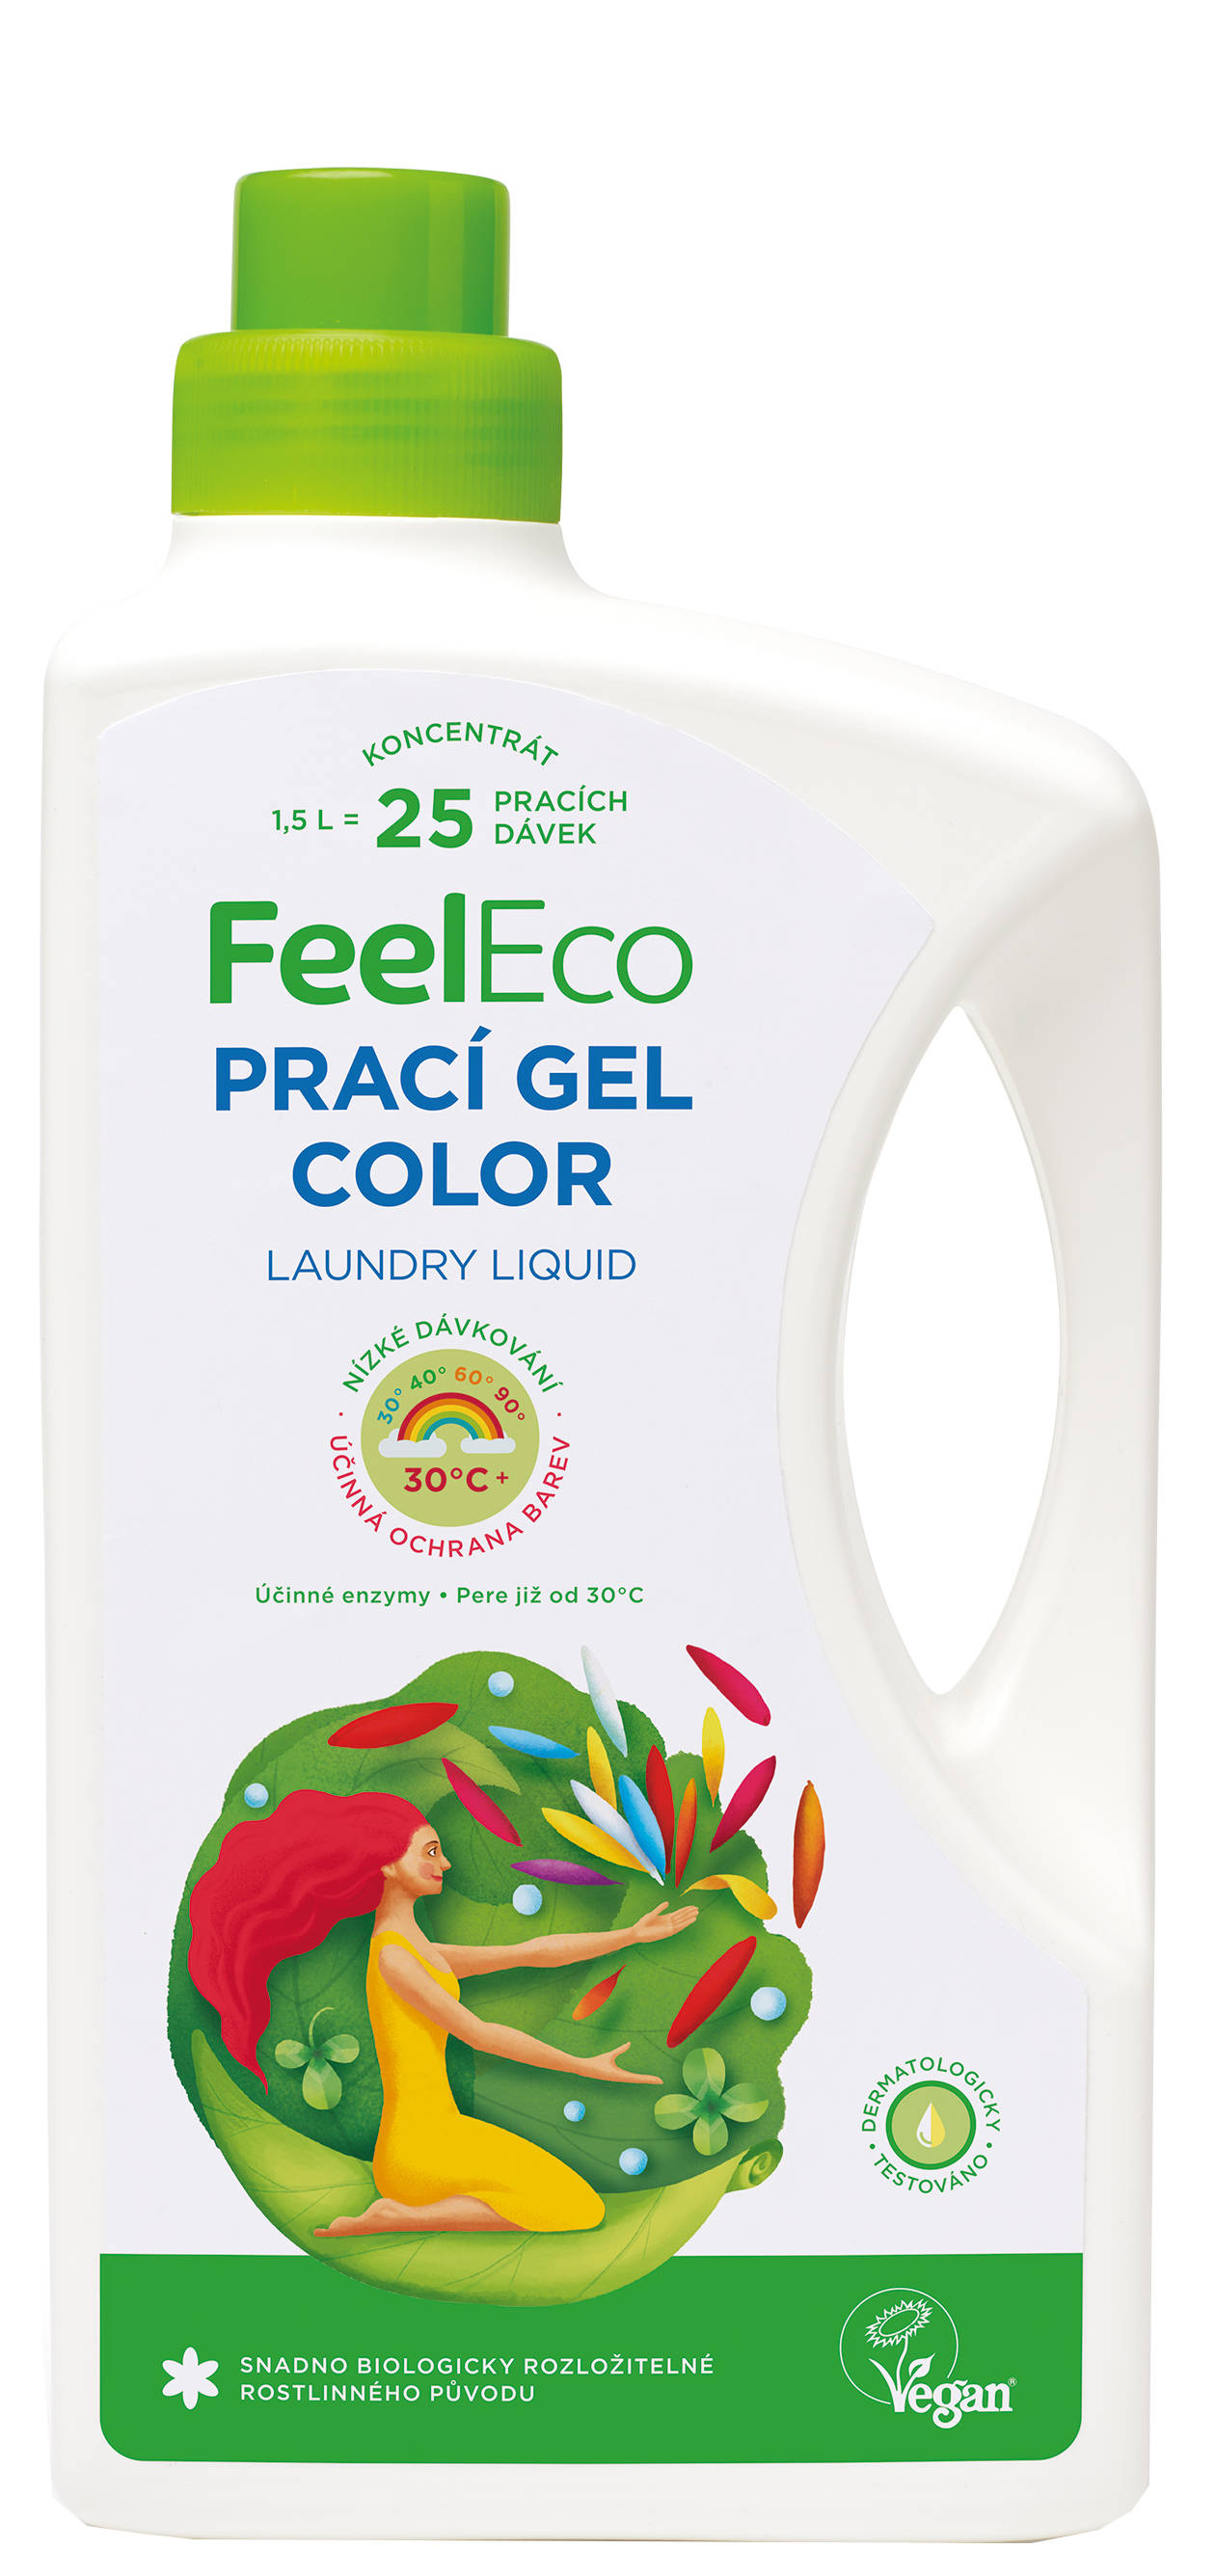 Feel Eco prací gél color 1,5l